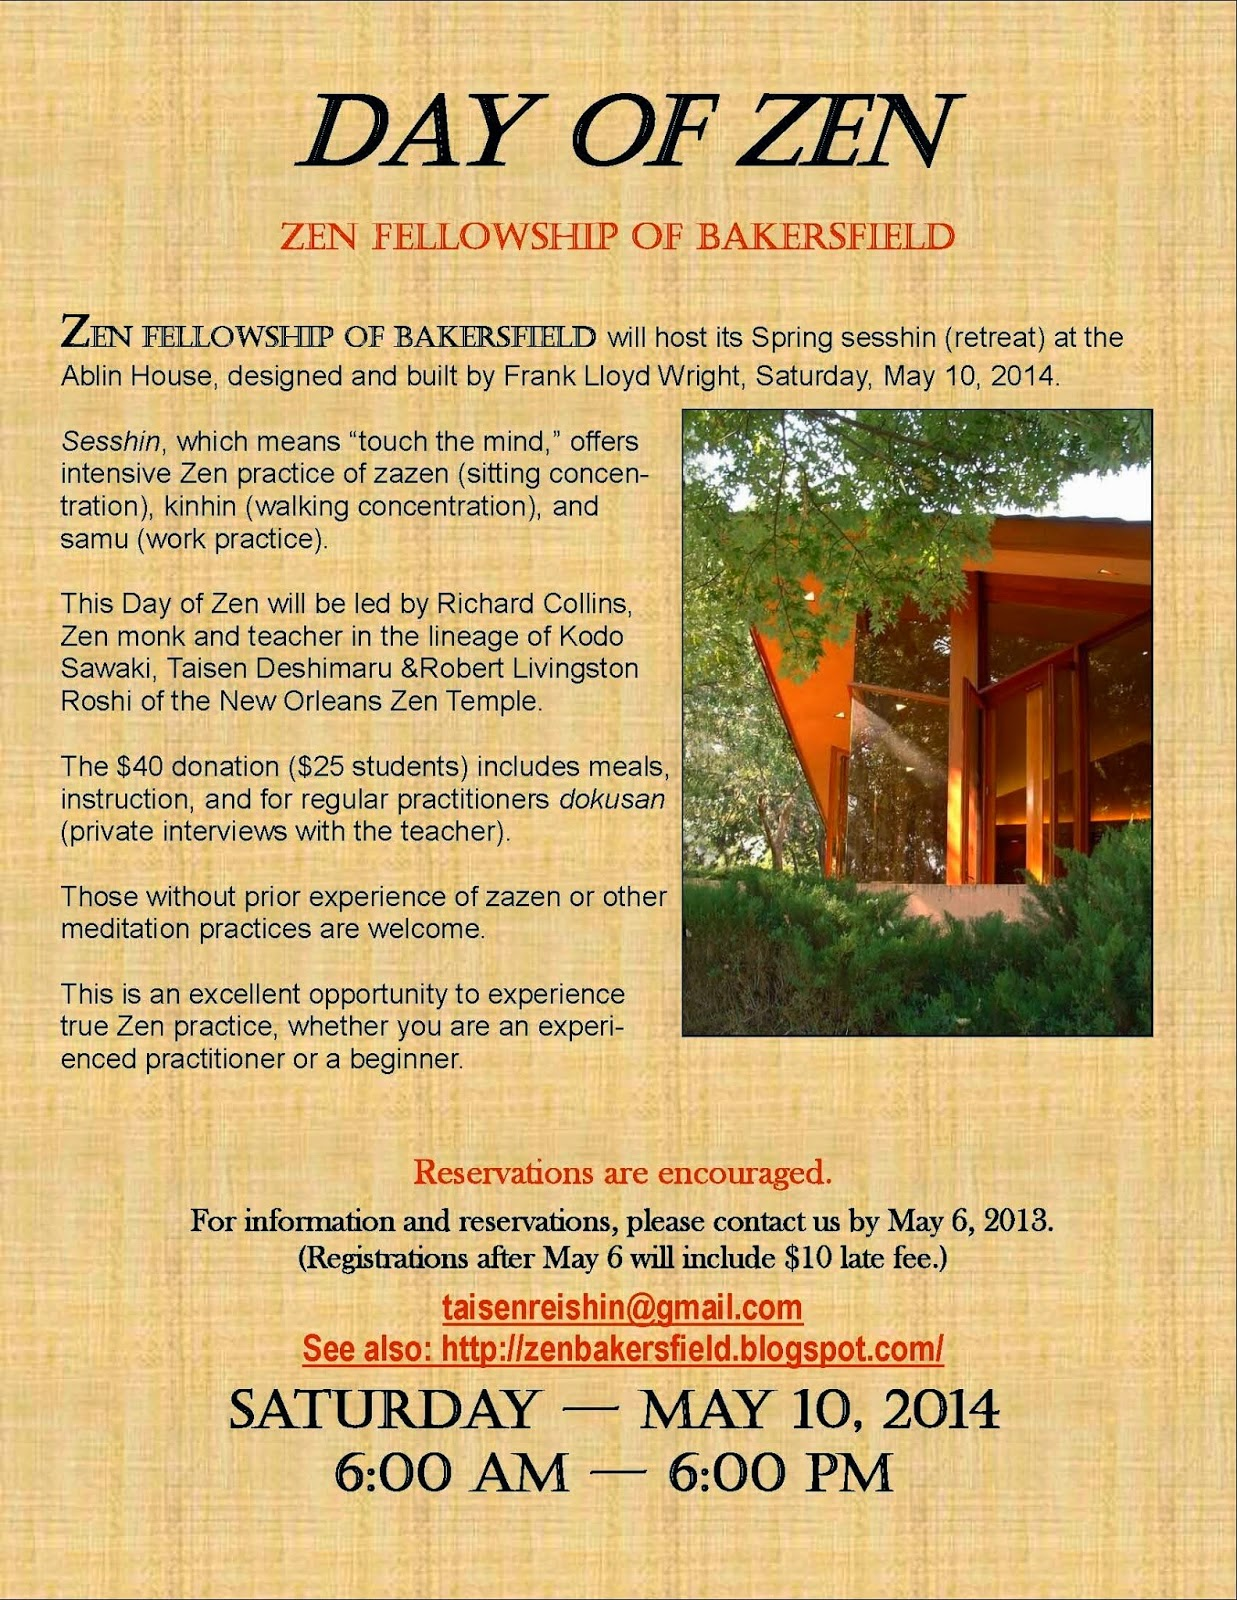 Day of Zen - May 10, 2014